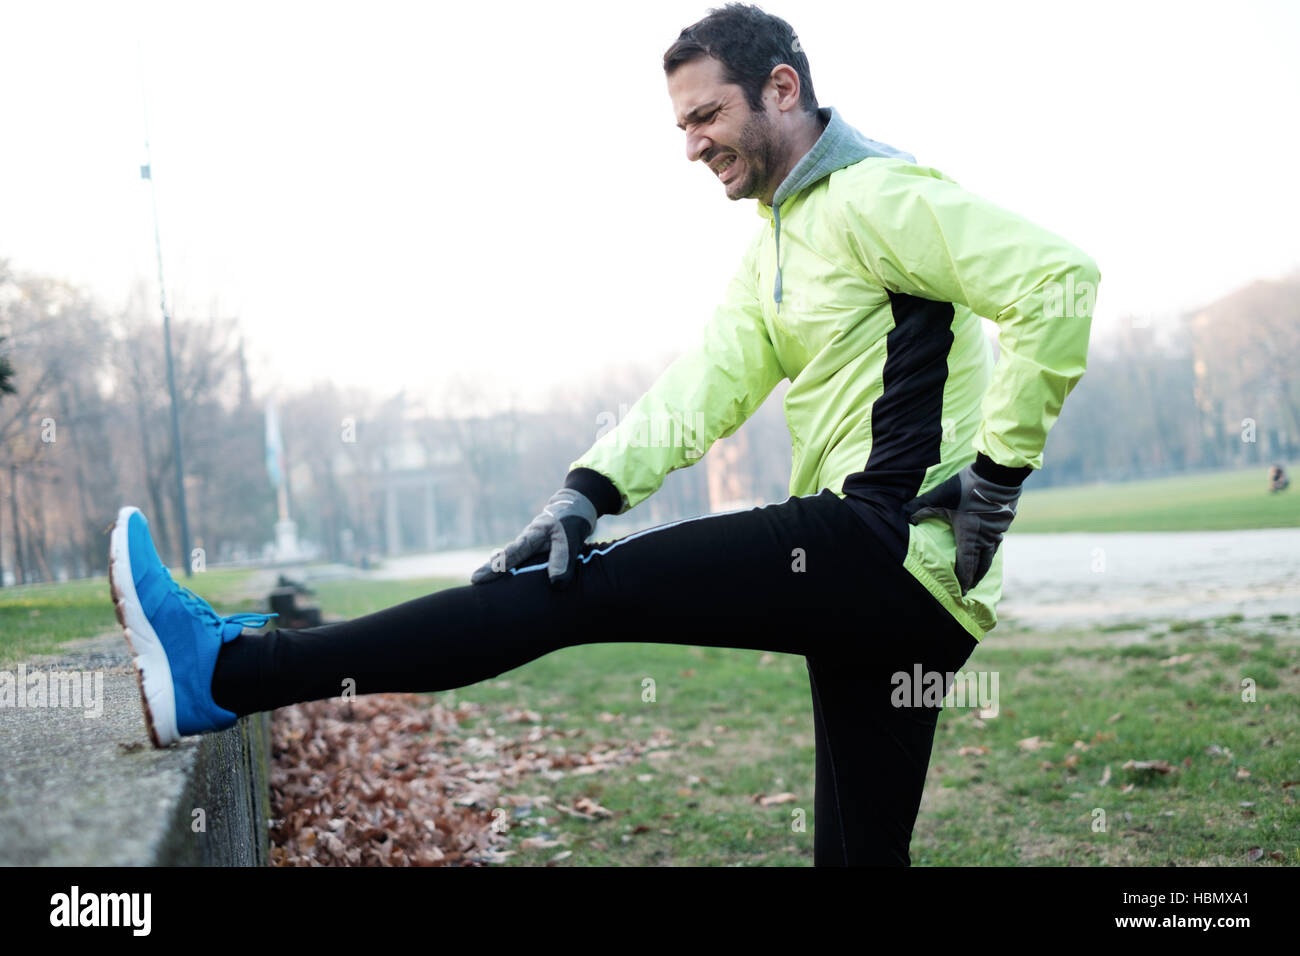 Man working out in the city park and stretching muscles - Stock Image